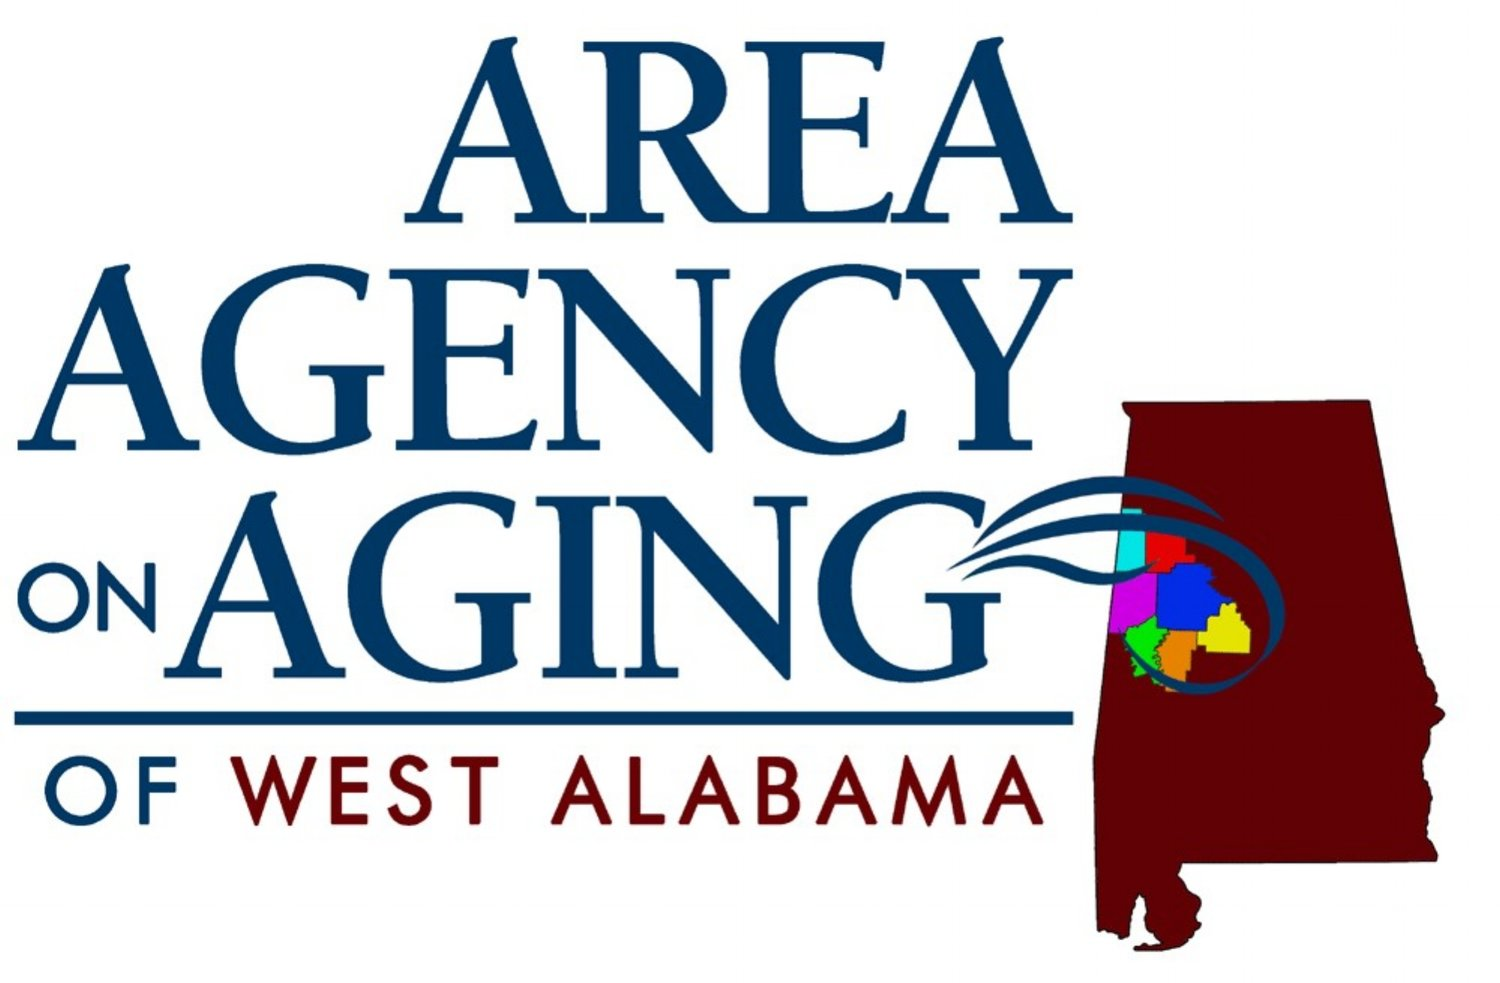 Area Agency on Aging of West Alabama